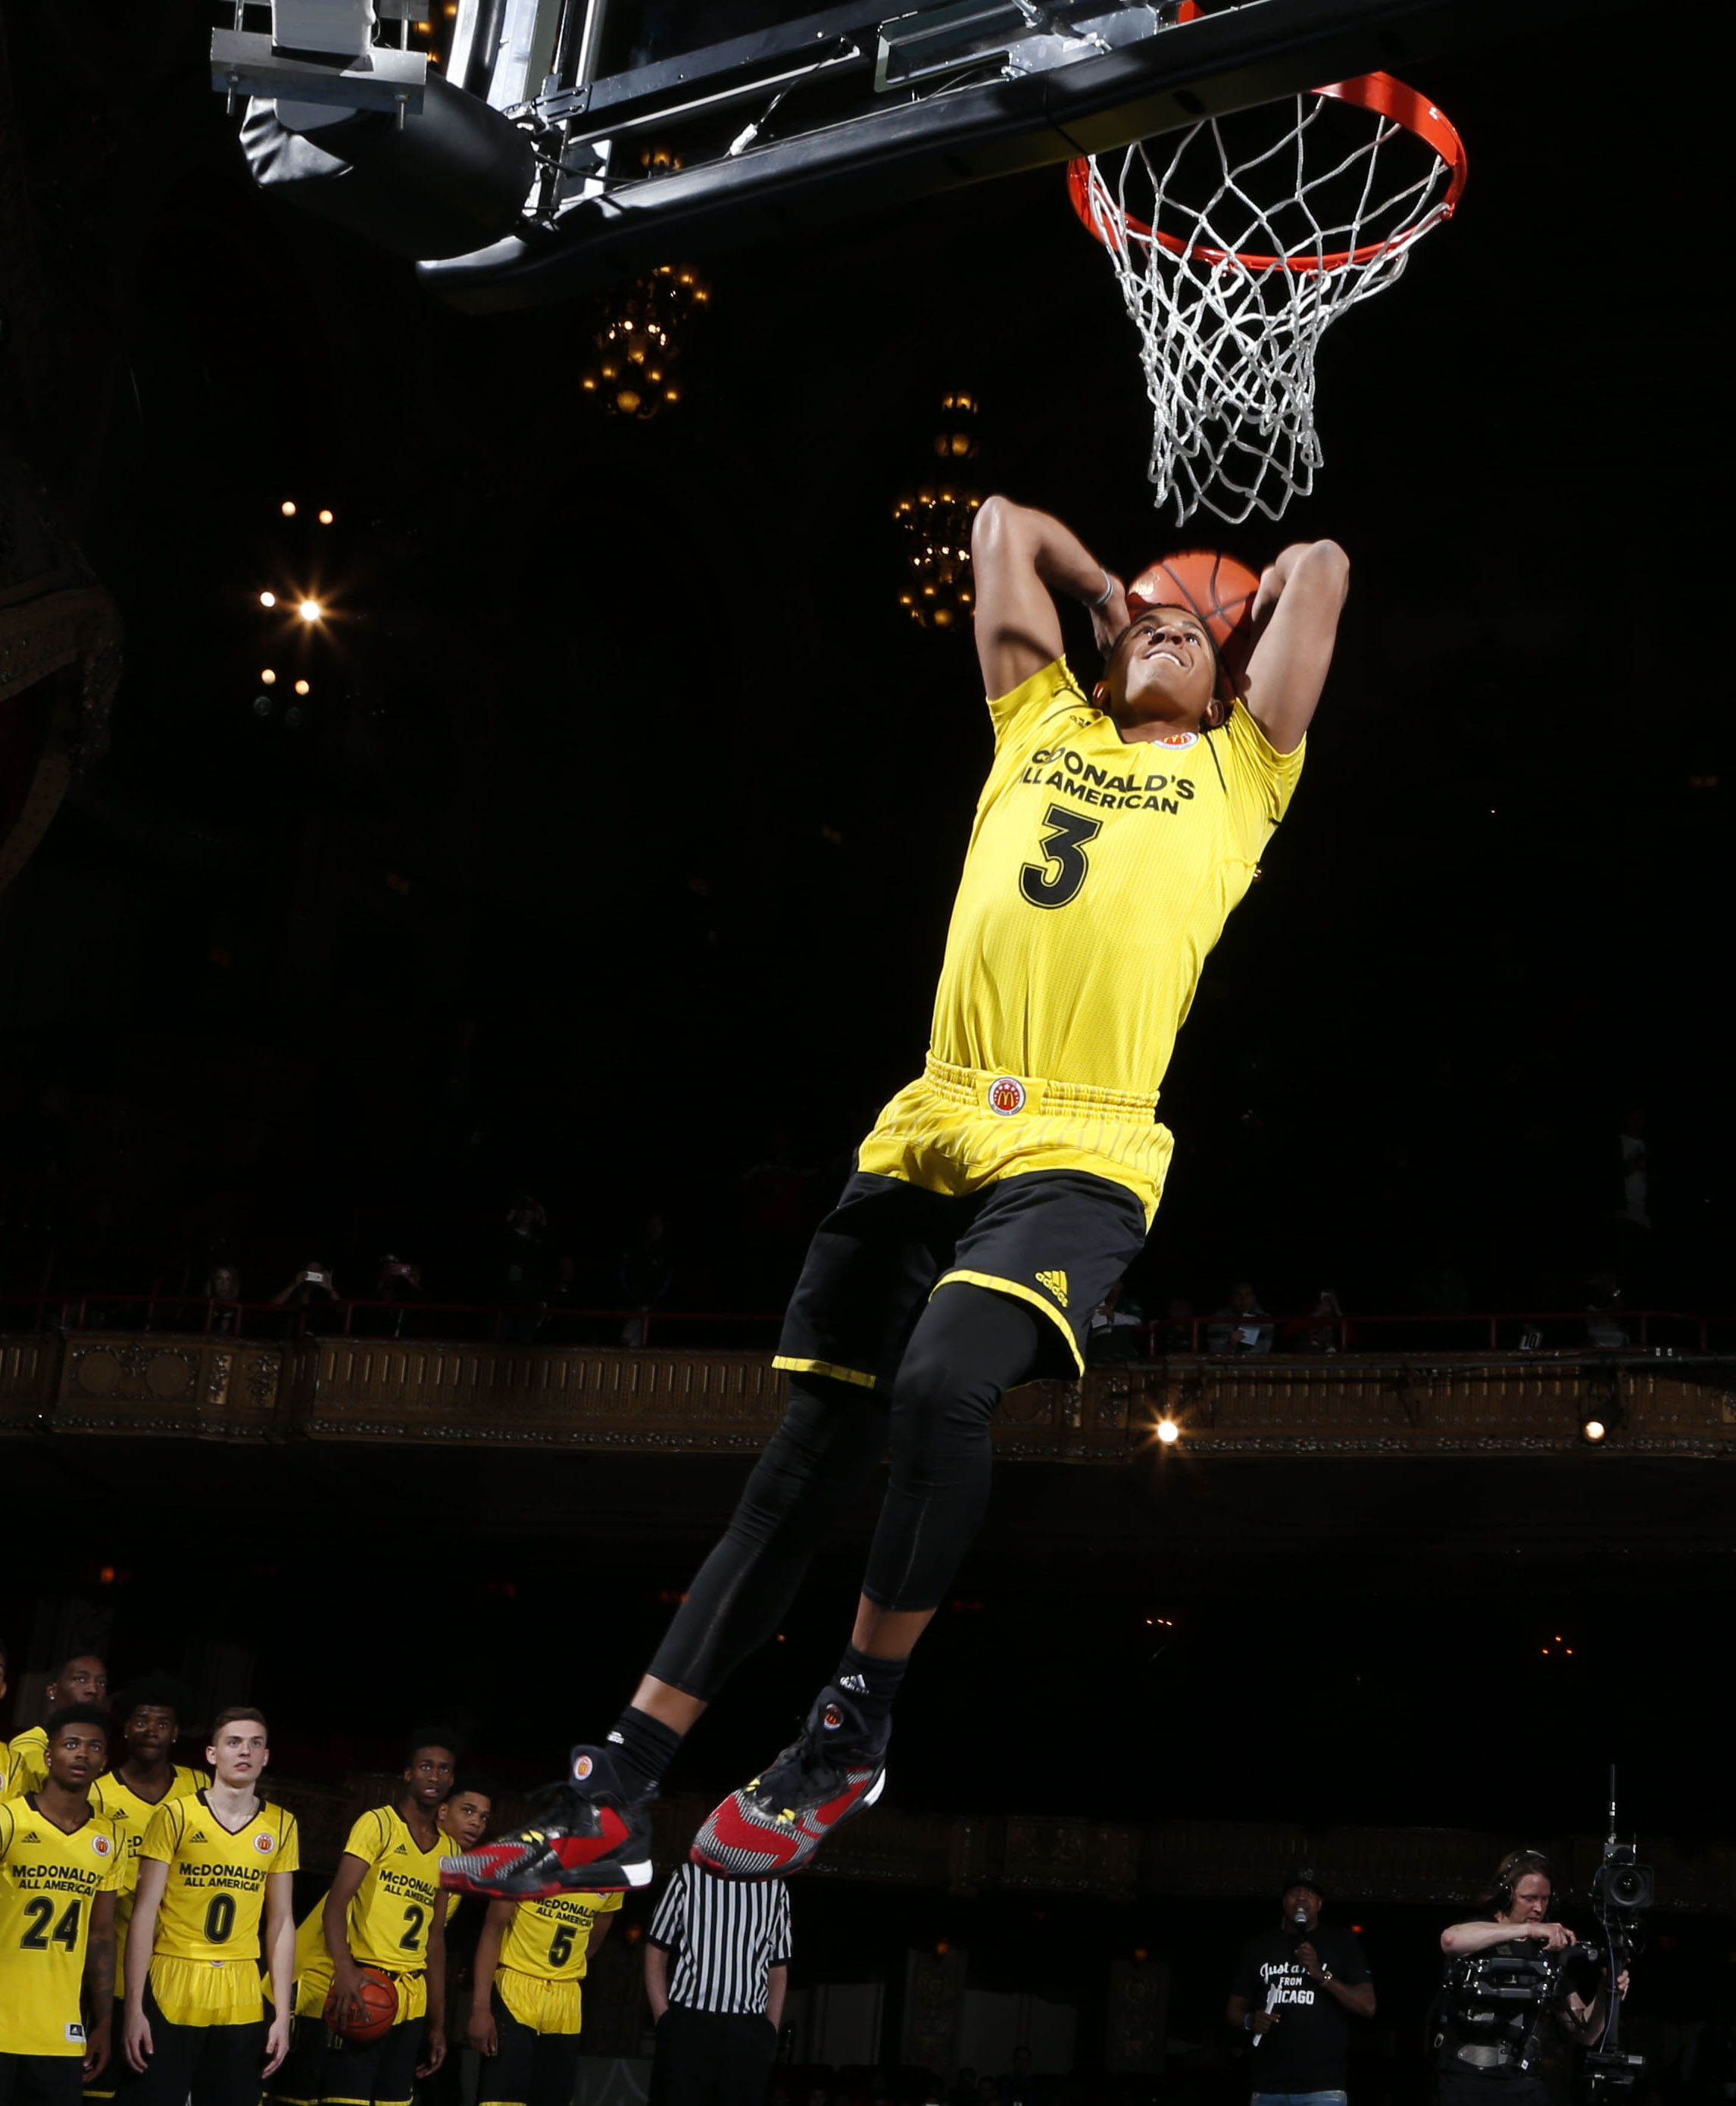 Frank Johnson dunks during the McDonalds All-American Powerade Jamfest (Photo: Brian Spurlock, USA TODAY Sports)